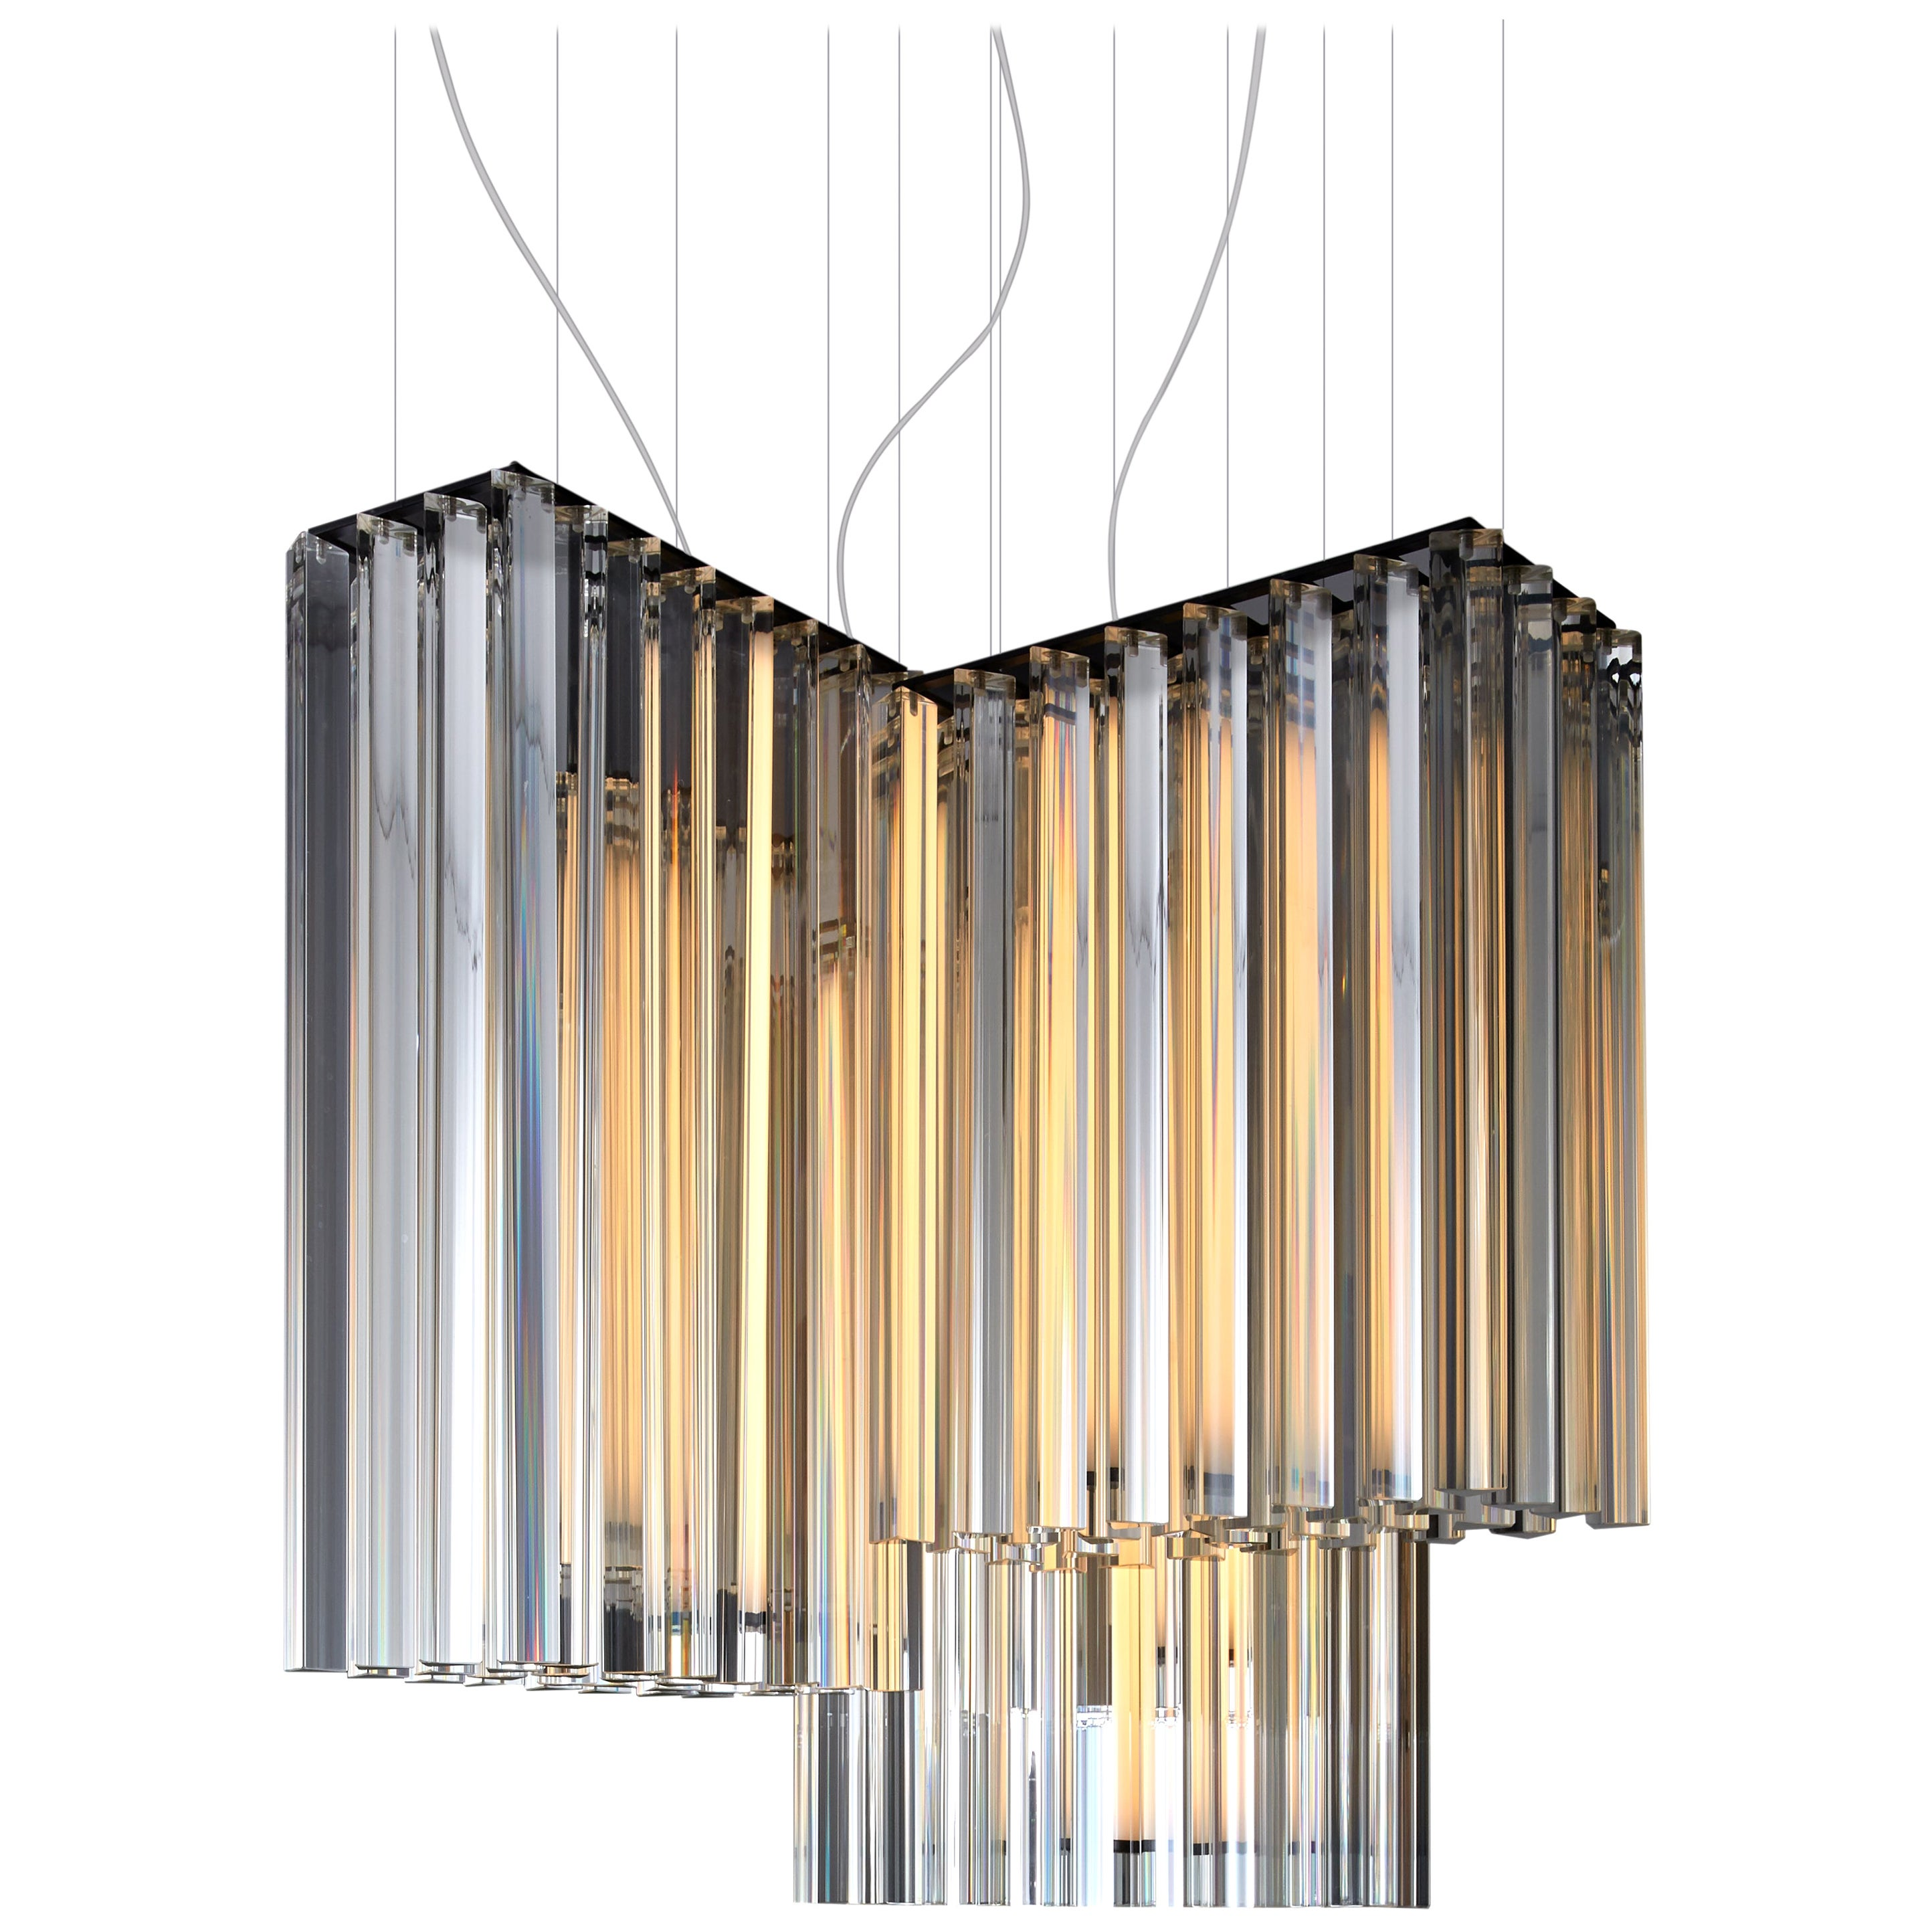 VeniceM Grace Composition Suspension Light in Metal & Crystal by Massimo Tonetto